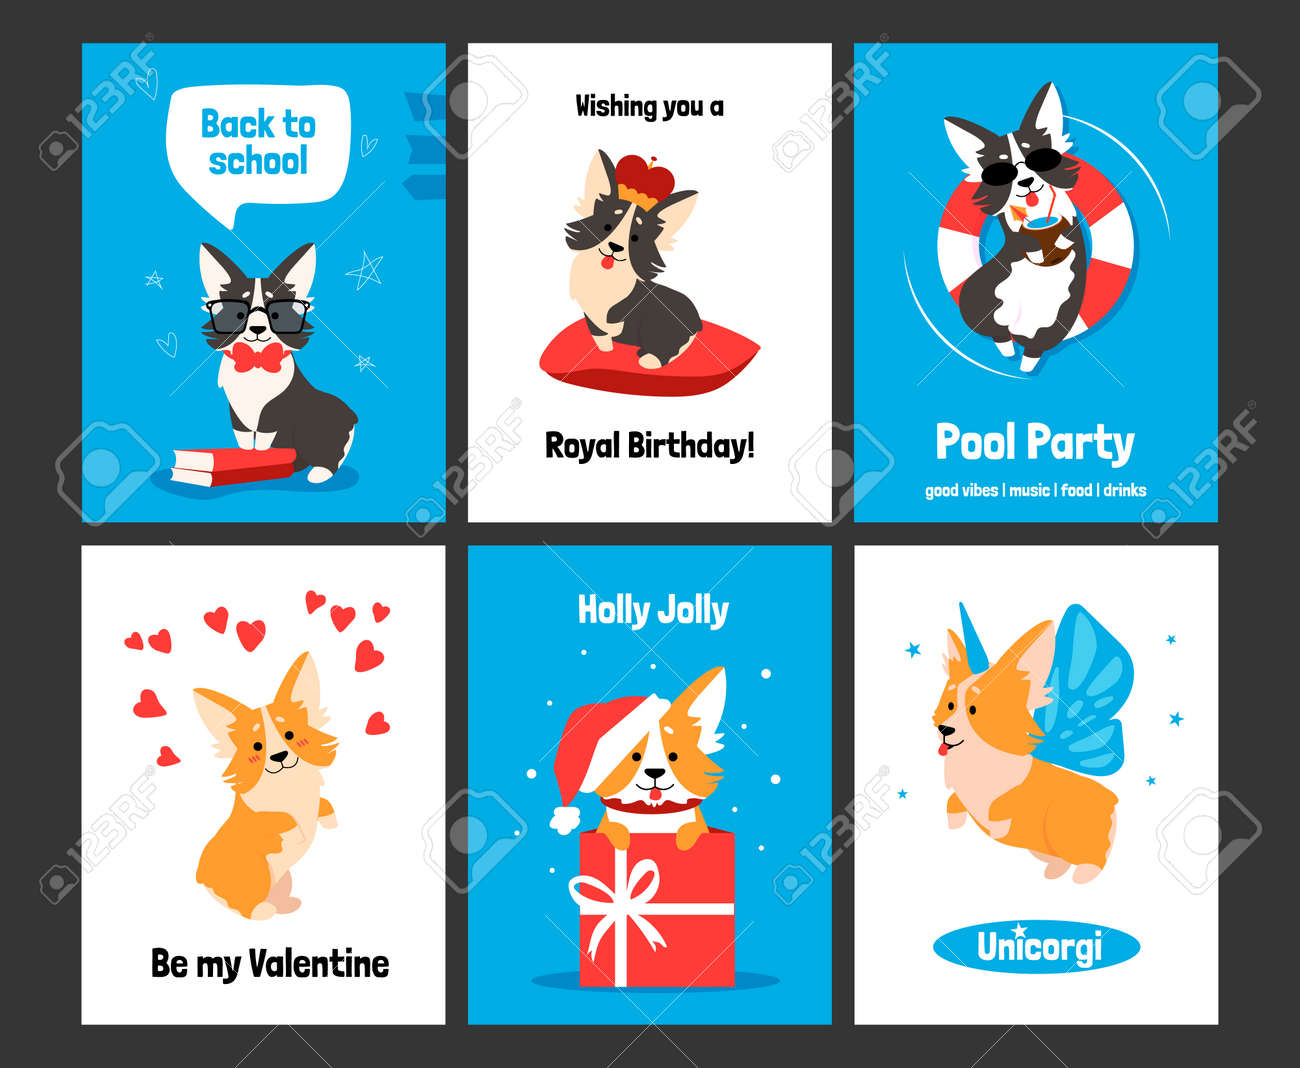 Corgi greeting card. Posters and invitations with cute puppy, cartoon dog characters on banners. Smiling animals with comic emotions, funny celebration text and holidays wishes. Vector postcards set - 157736470